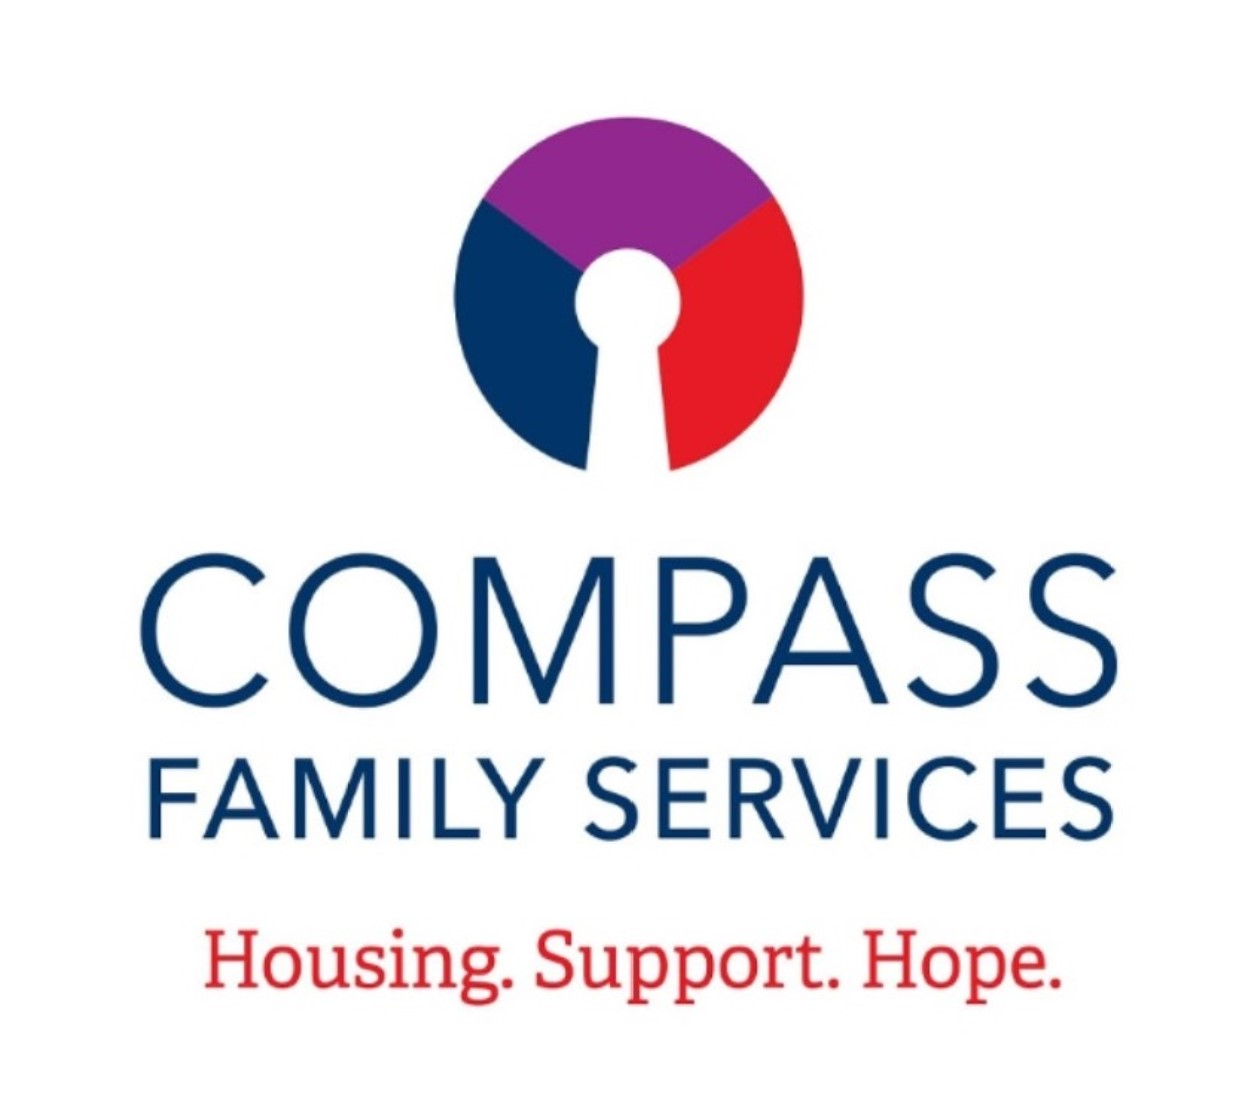 Compass Family Services